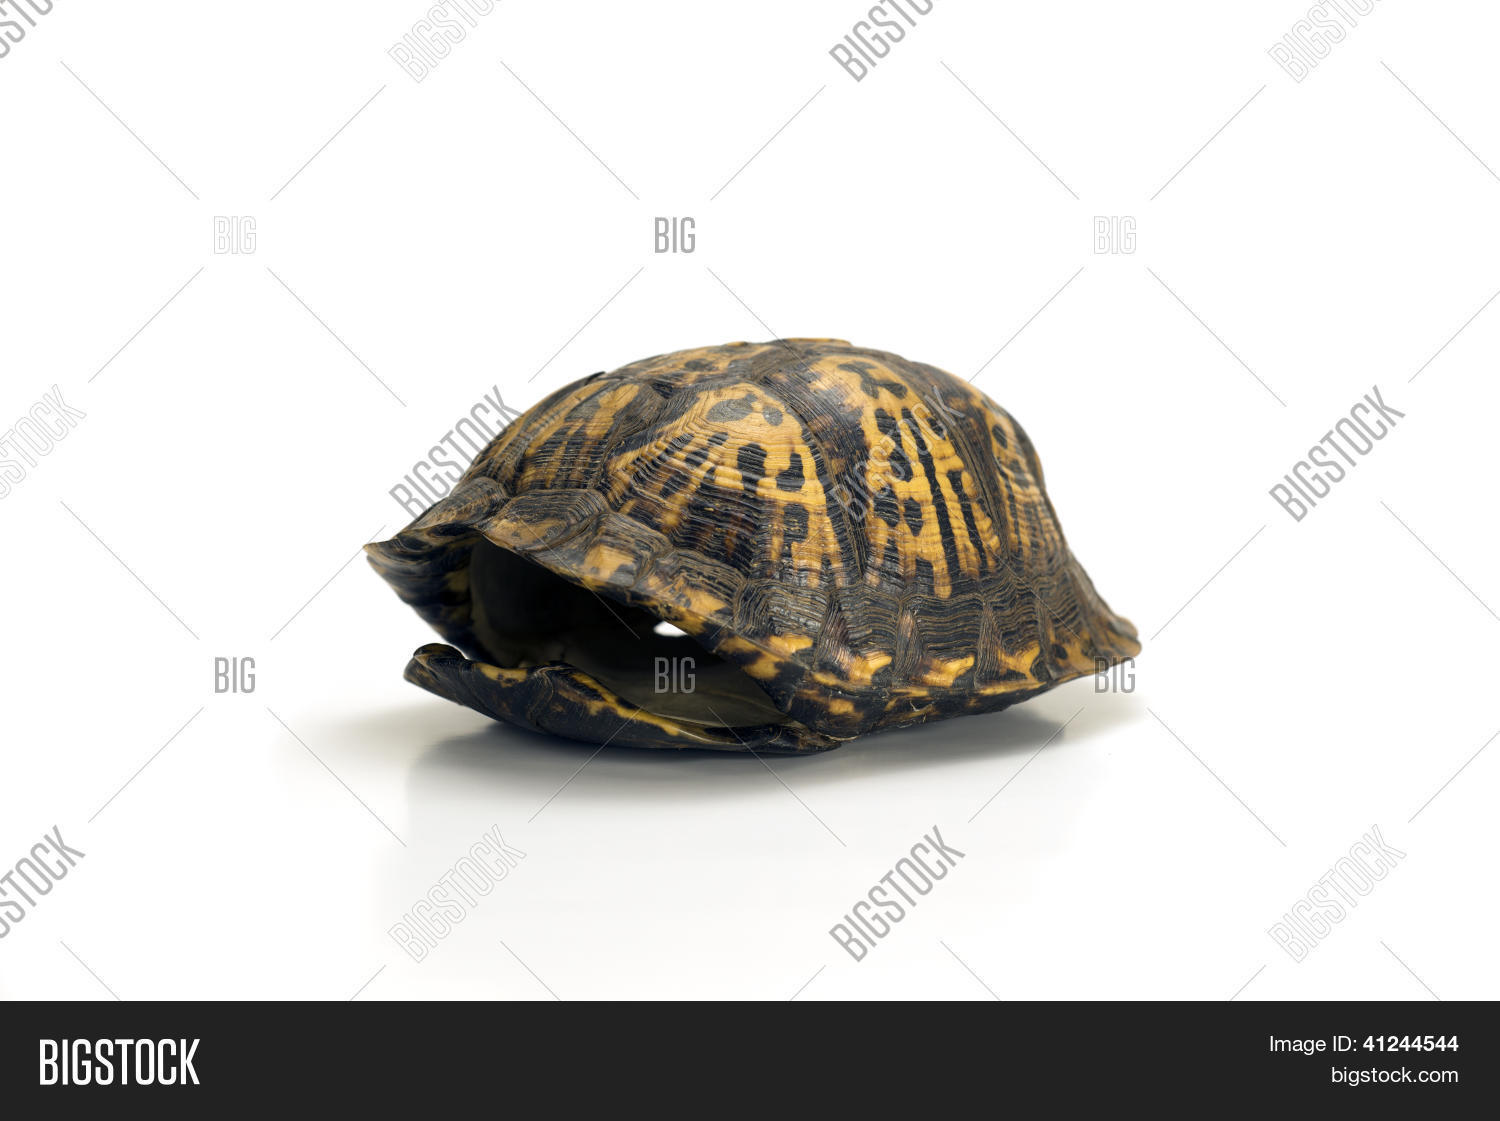 Empty Turtle Shell Image & Photo (Free Trial) | Bigstock